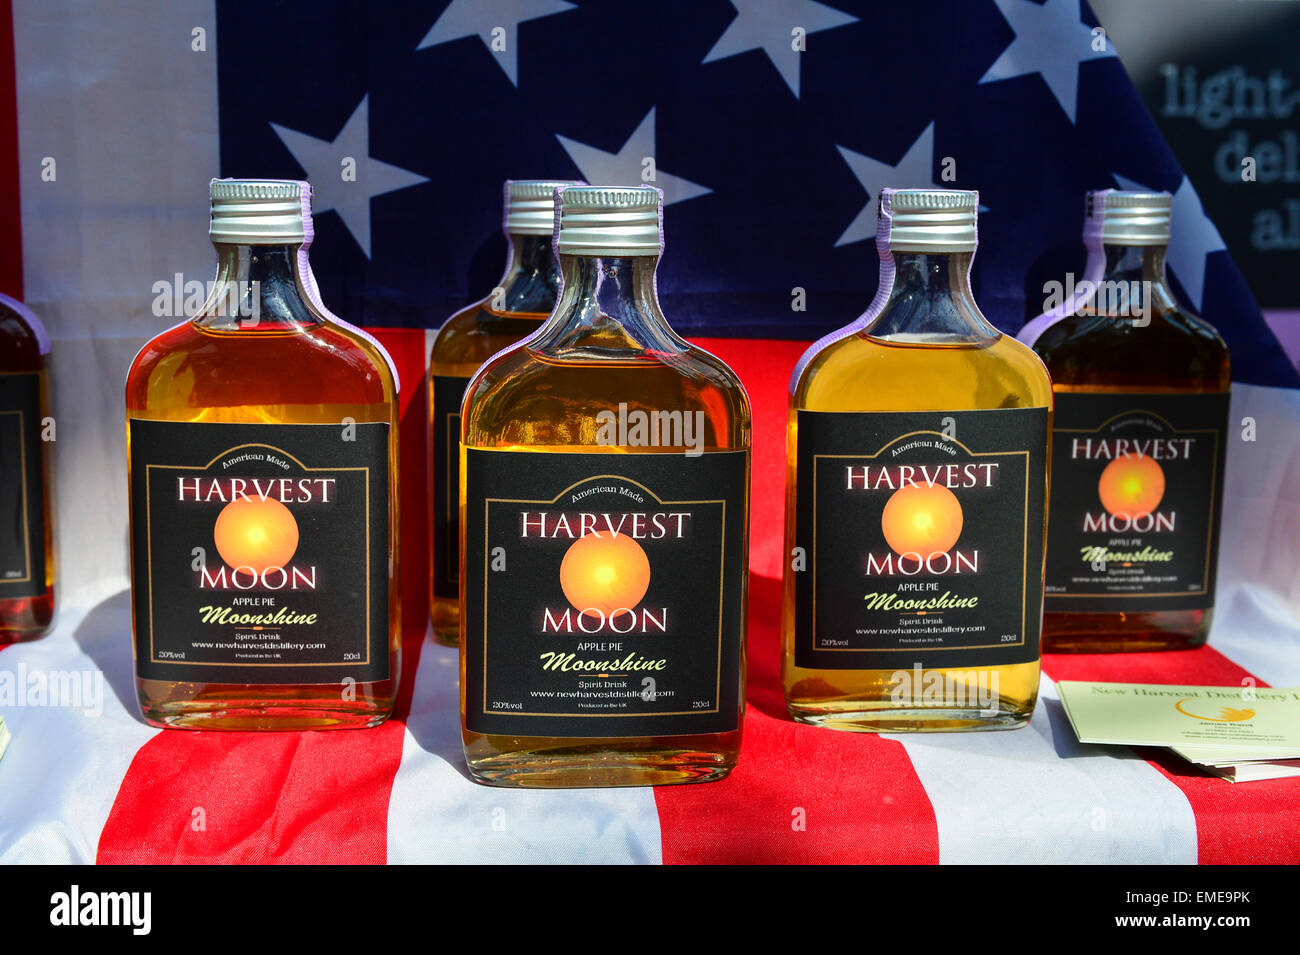 Bottles of Harvest Moon apple moonshine spirit drink on sale, Craft Village, Londonderry (Derry), Northern Ireland - Stock Image